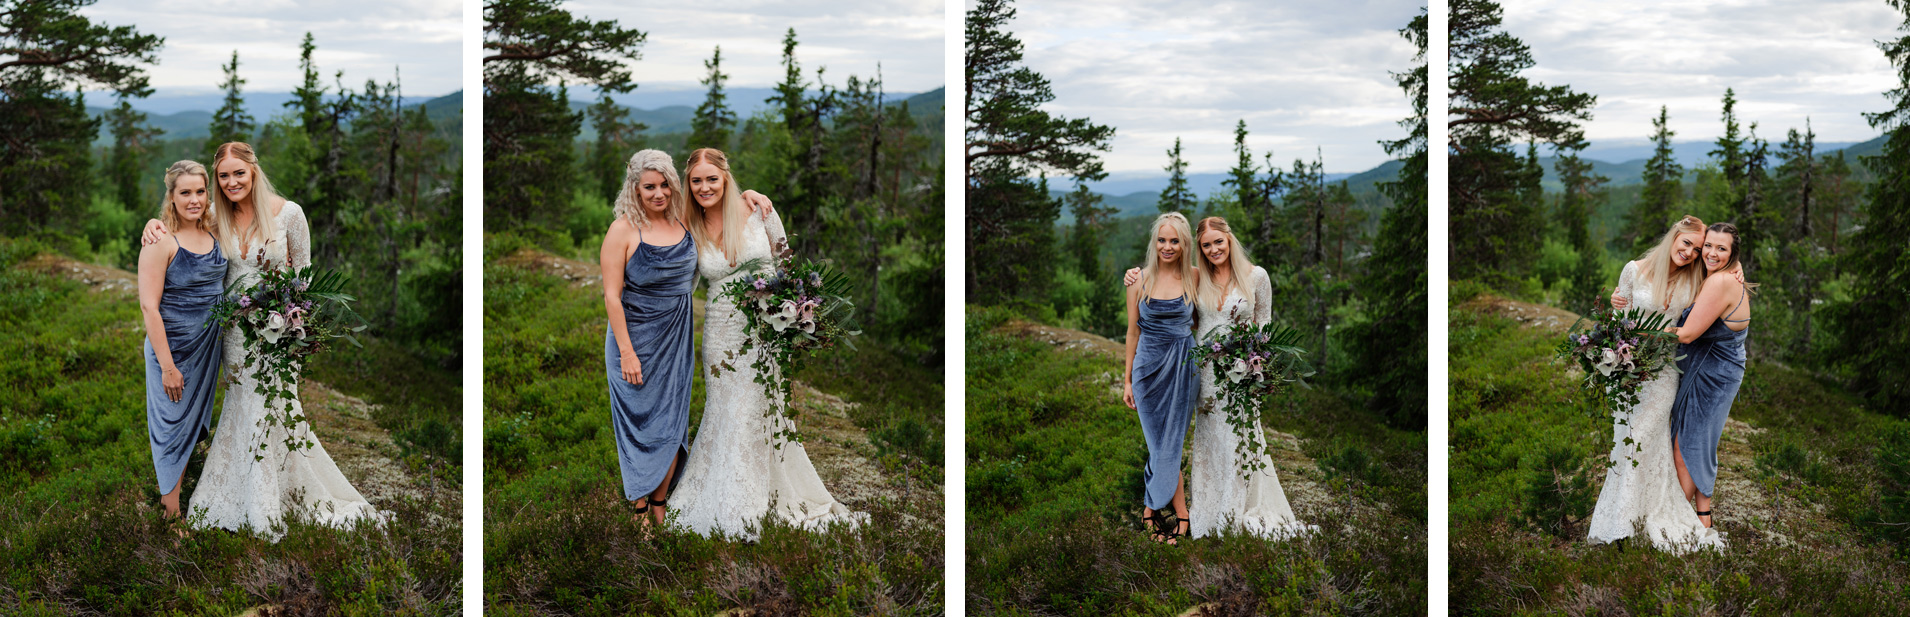 best wedding photographer norway